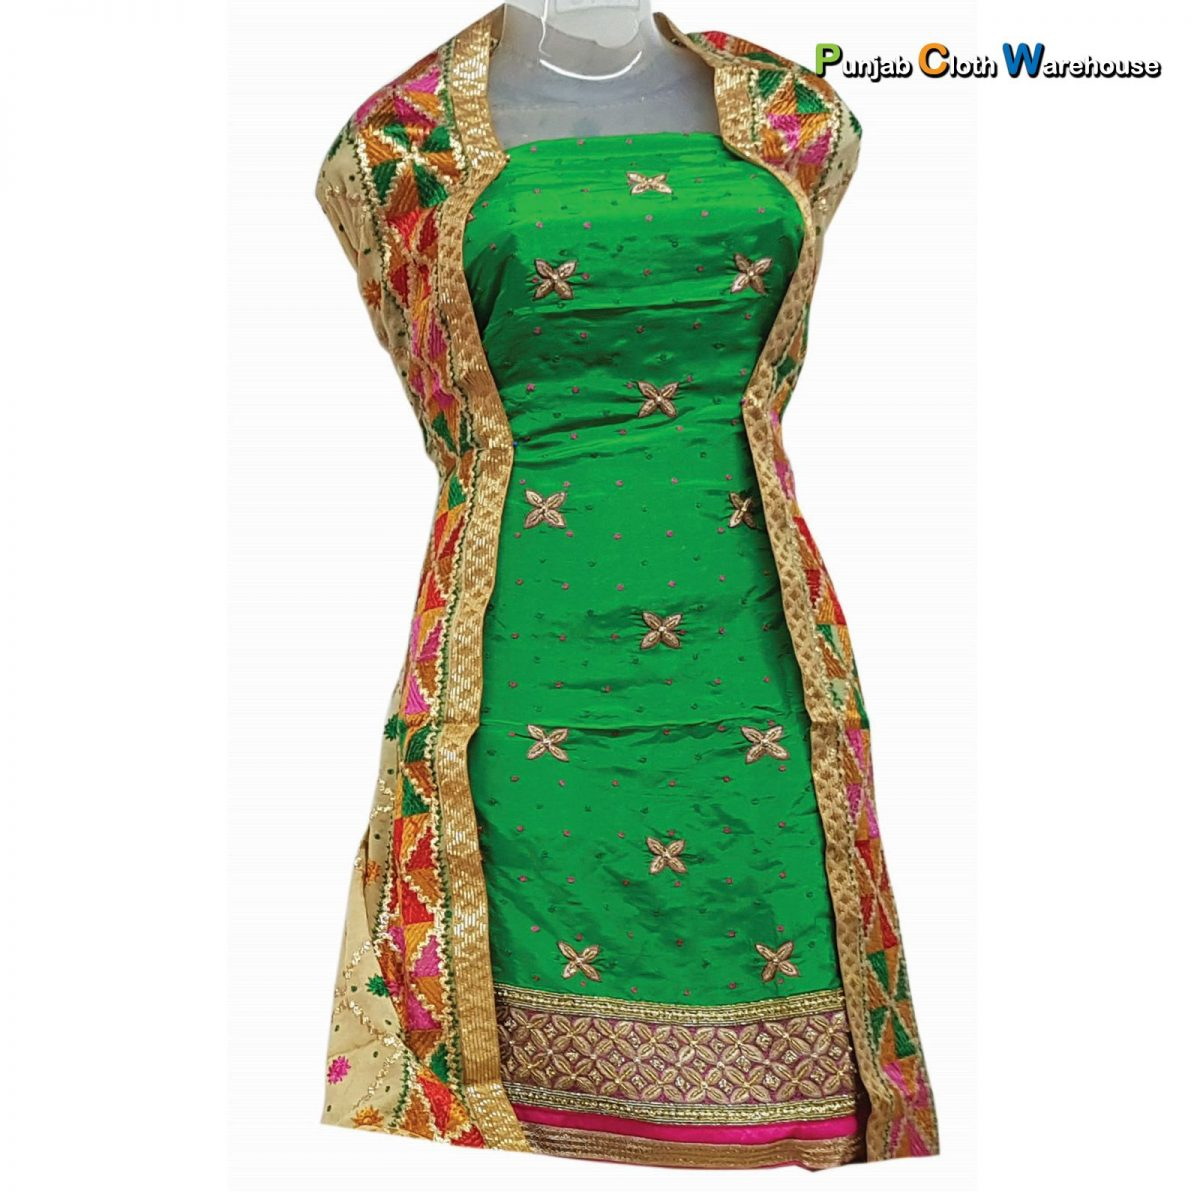 Ladies Suits - Cut Piece - Punjab Cloth Warehouse, Surrey (18)